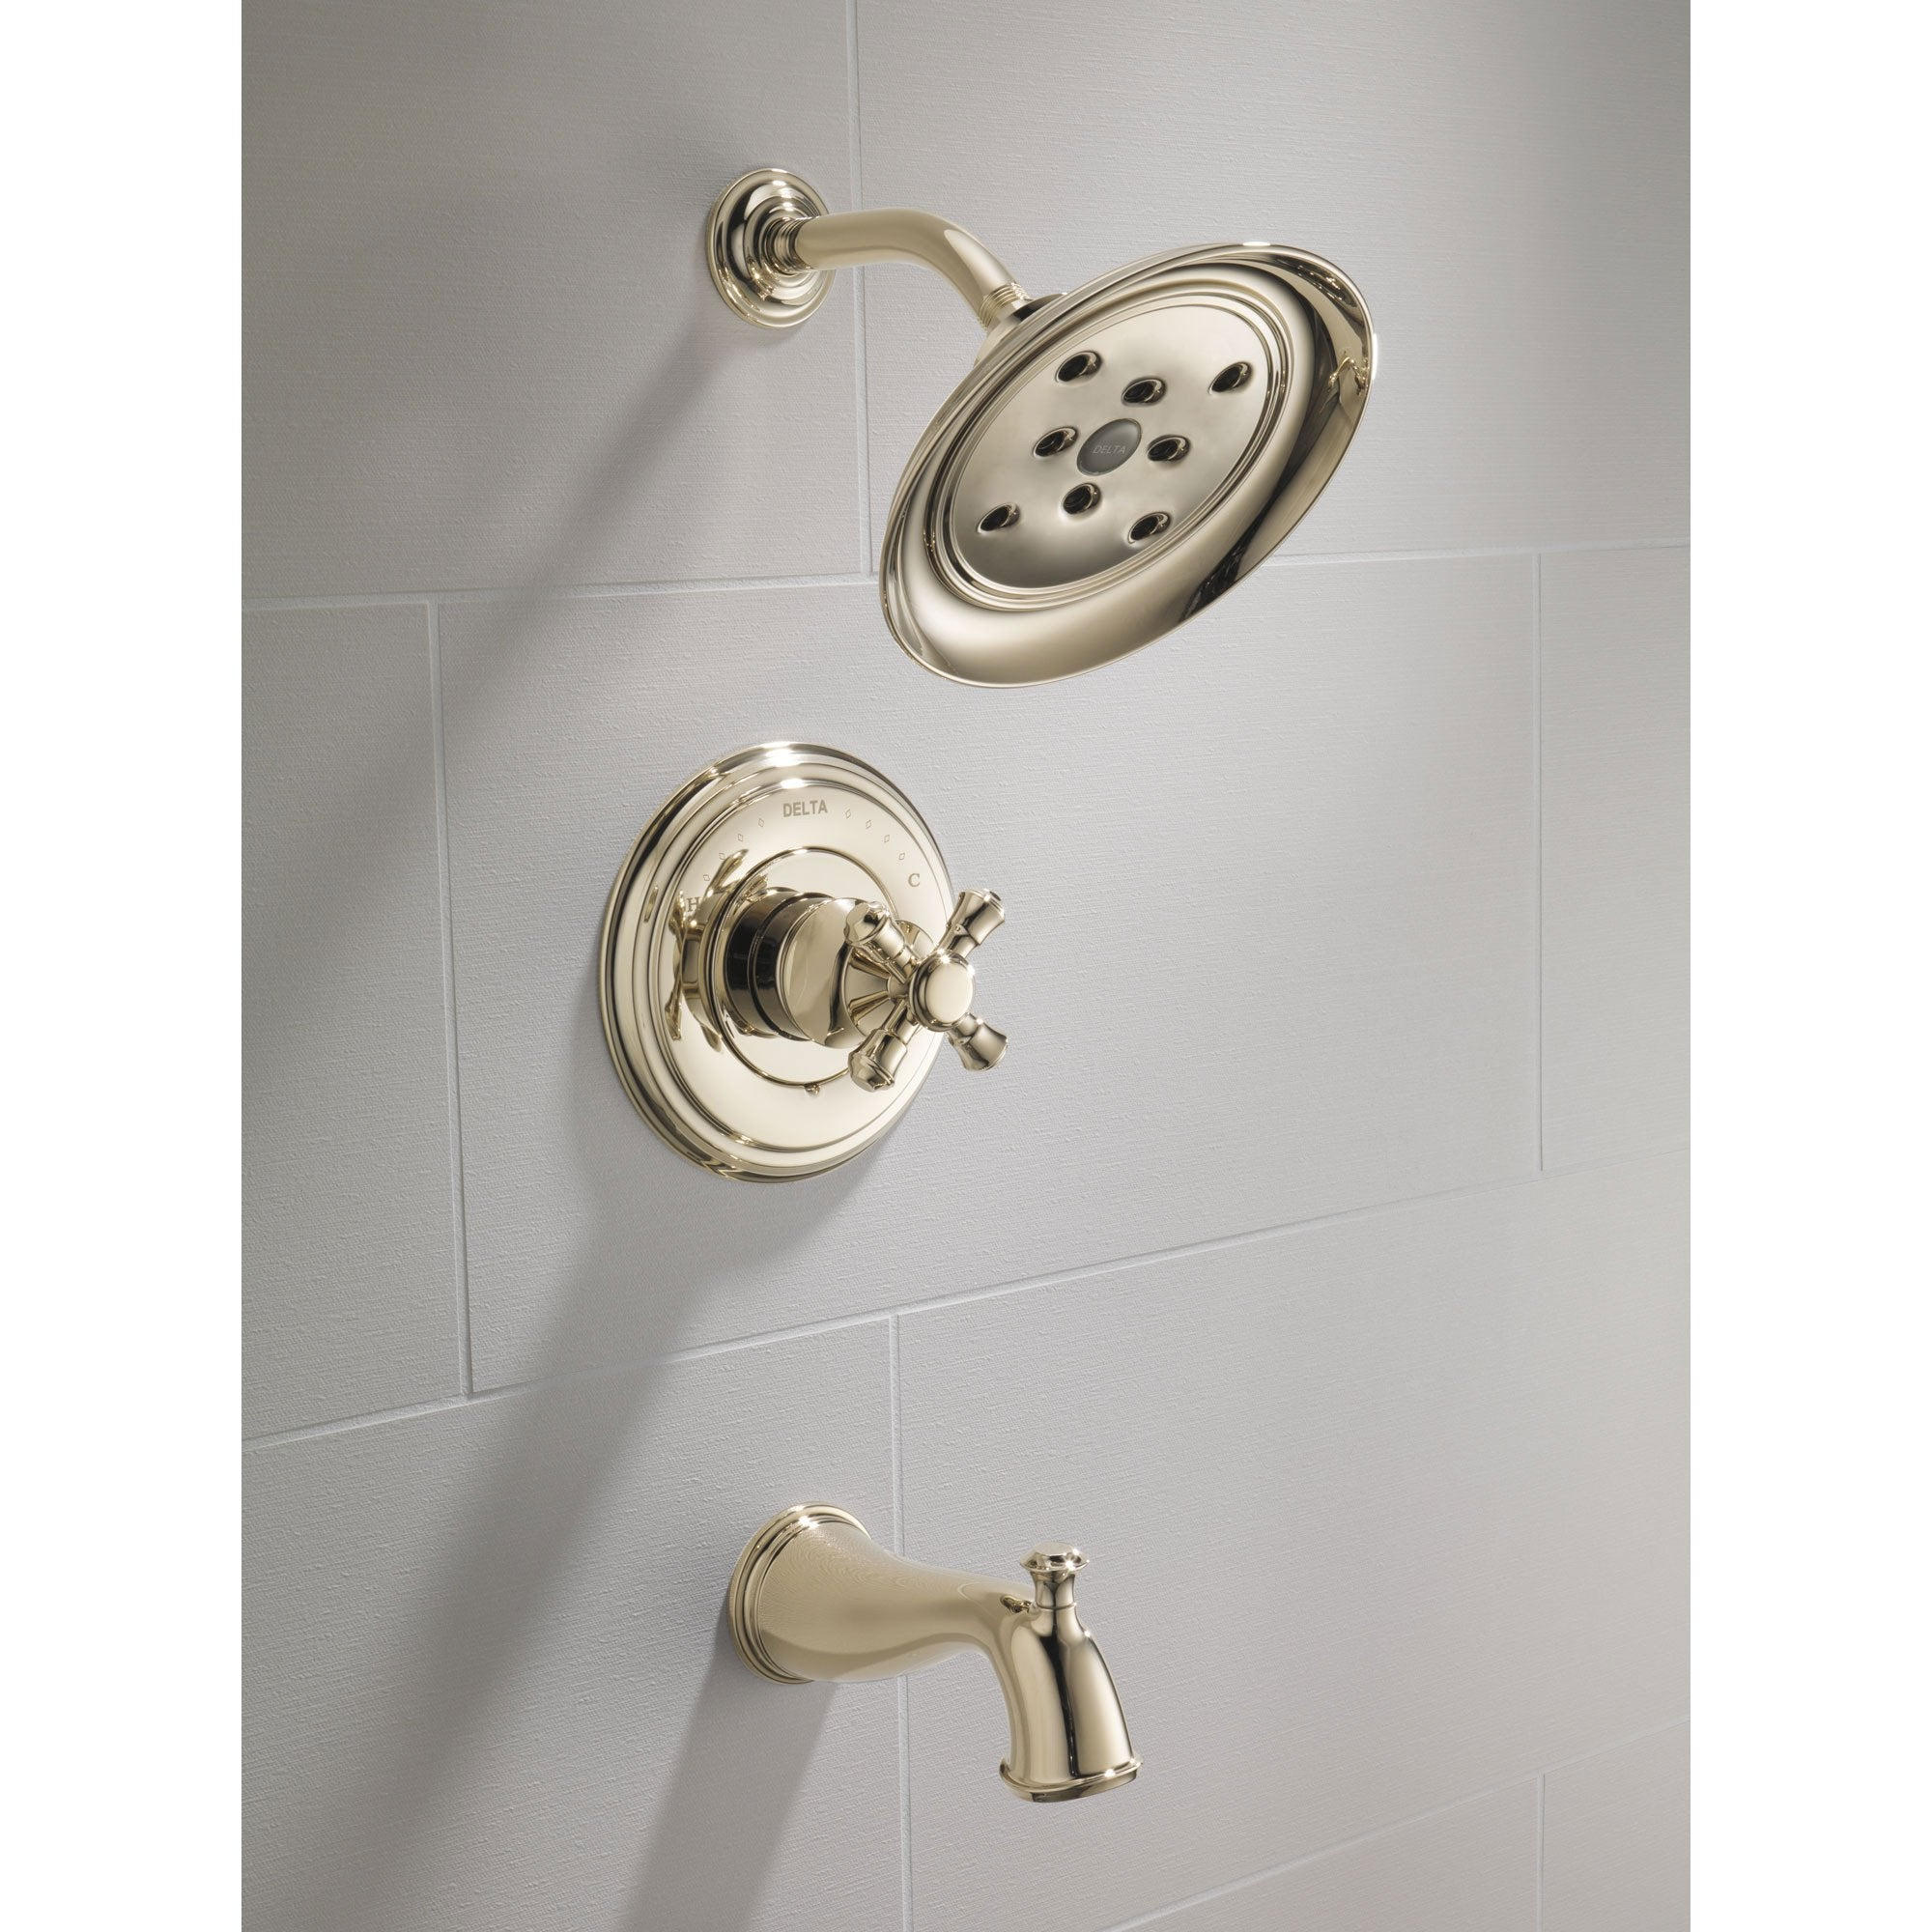 head integrated rod control balanced dss monitor vero system hand and shower dual series chrome delta with pressure function volume